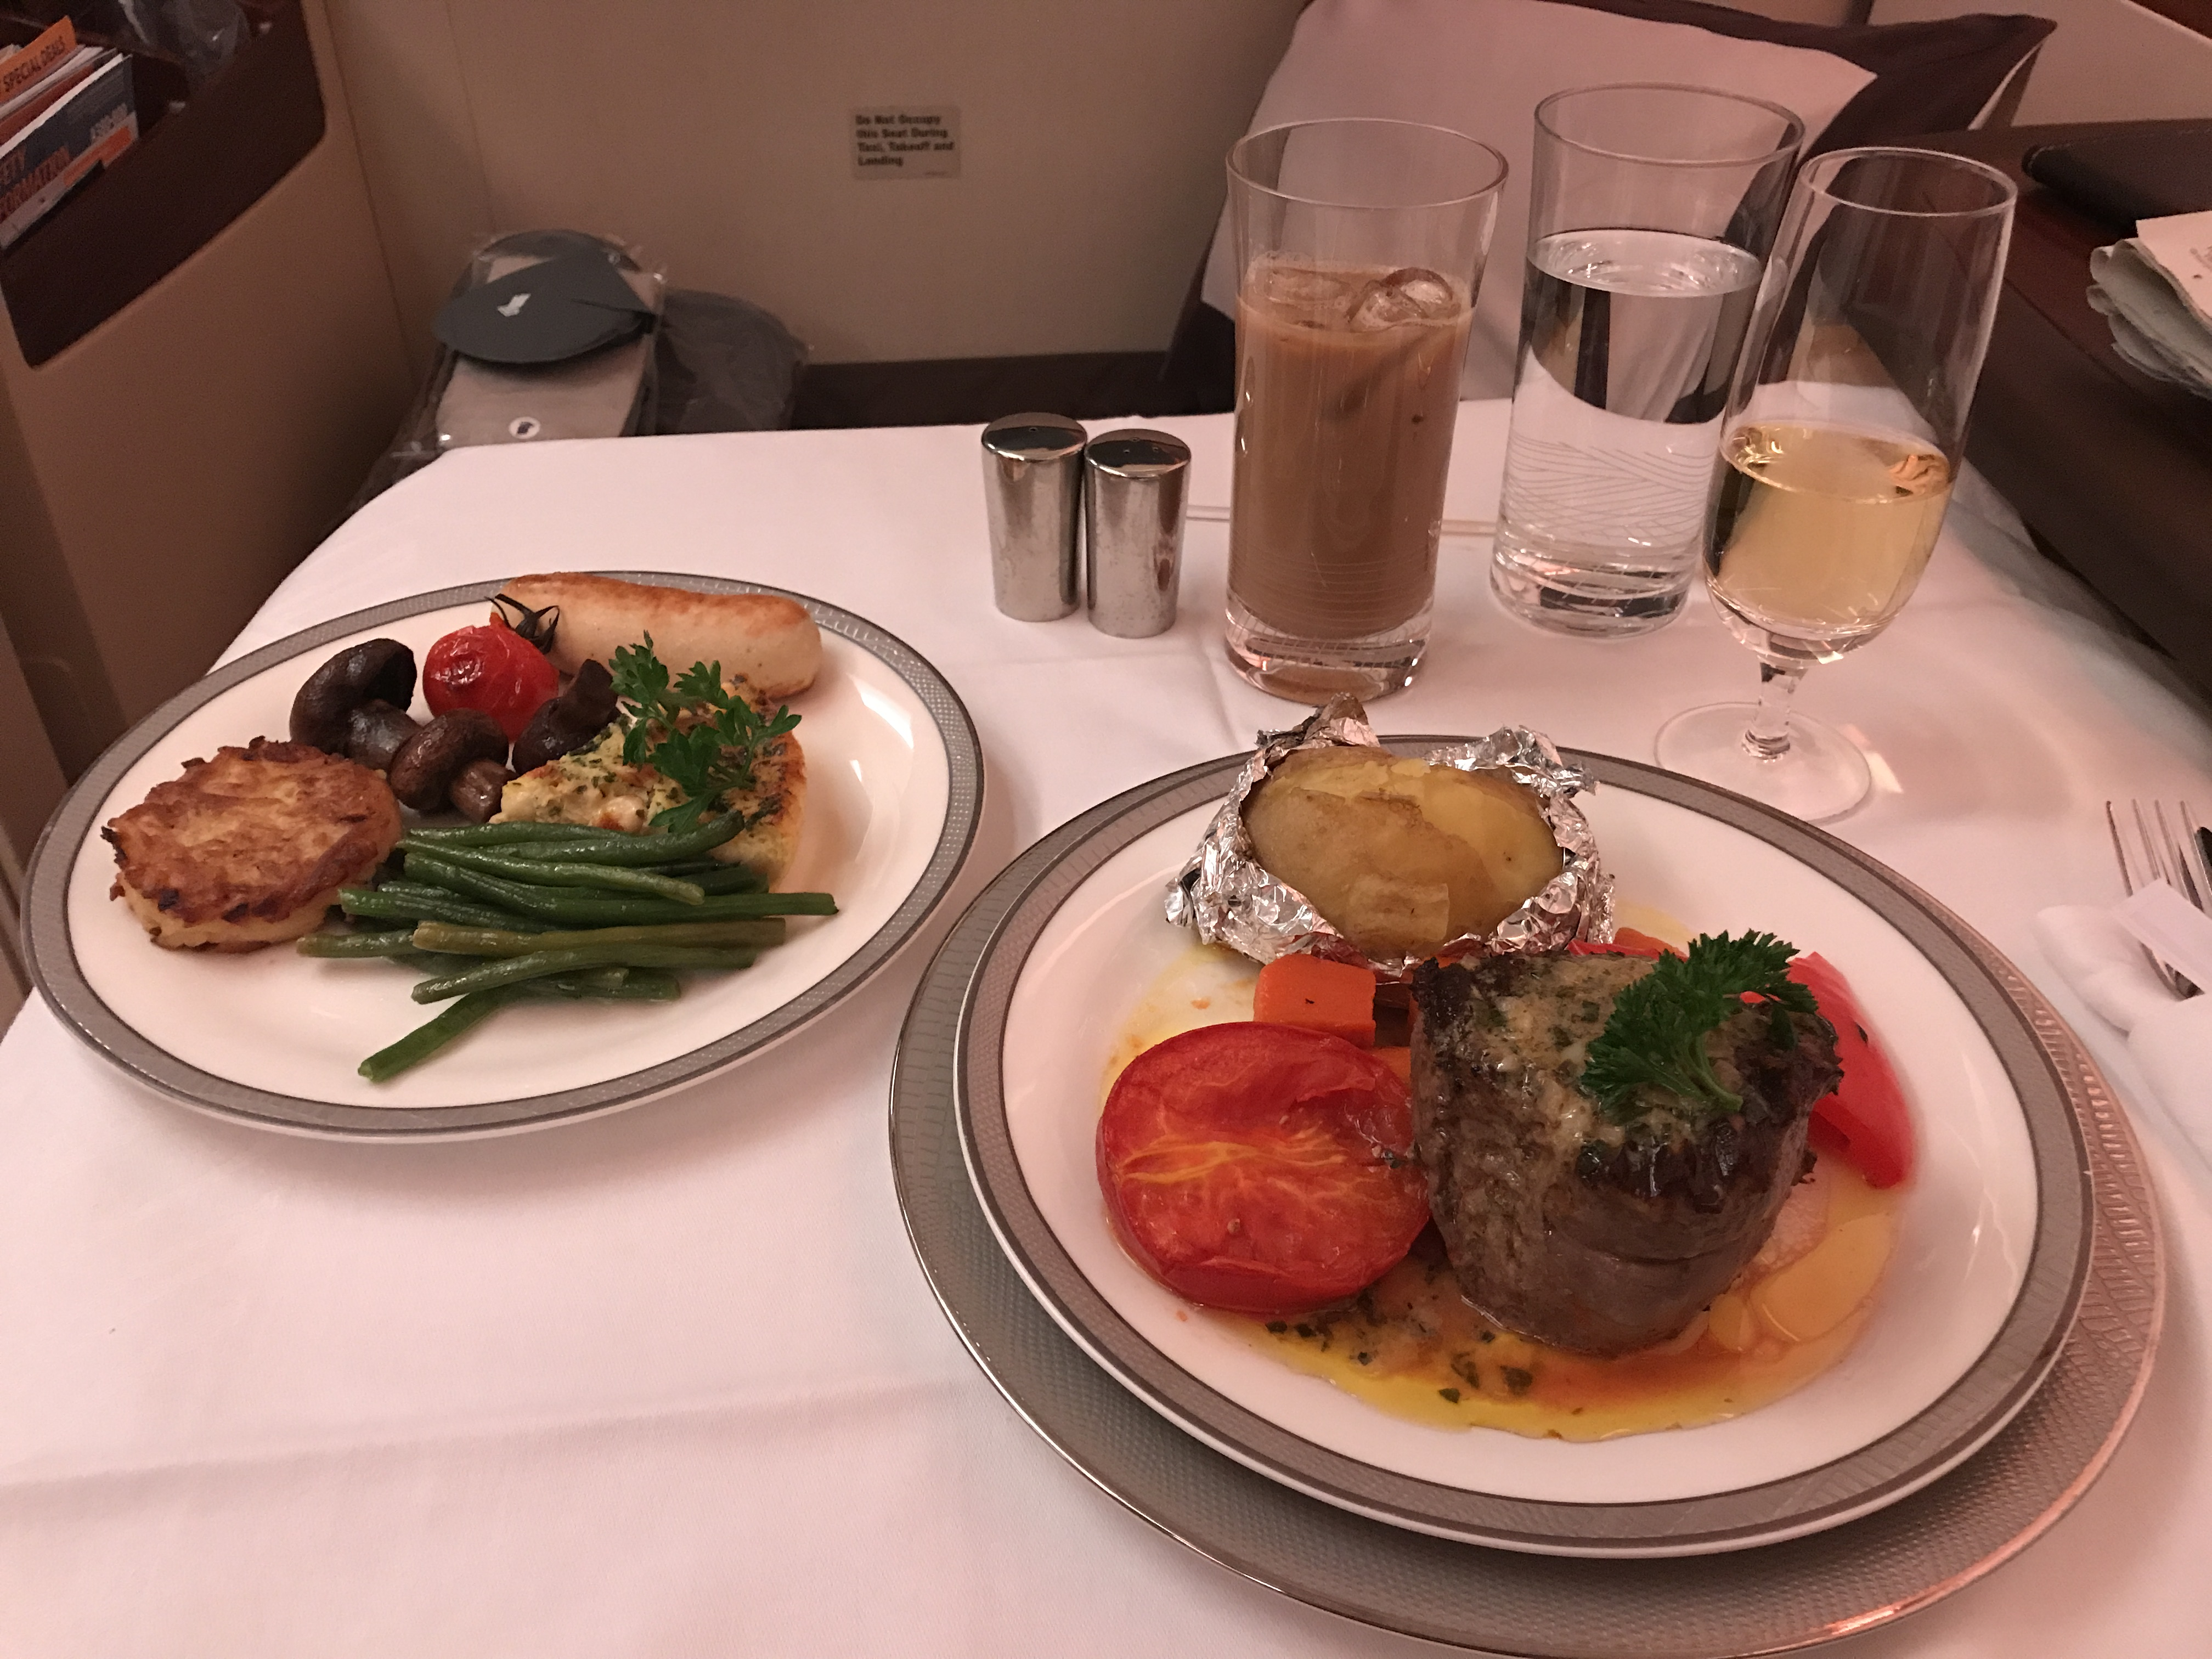 At left: goat cheese quiche with green beans, rosti potatoes, mushrooms, and veal sausage. At right: Steak with a baked potato.